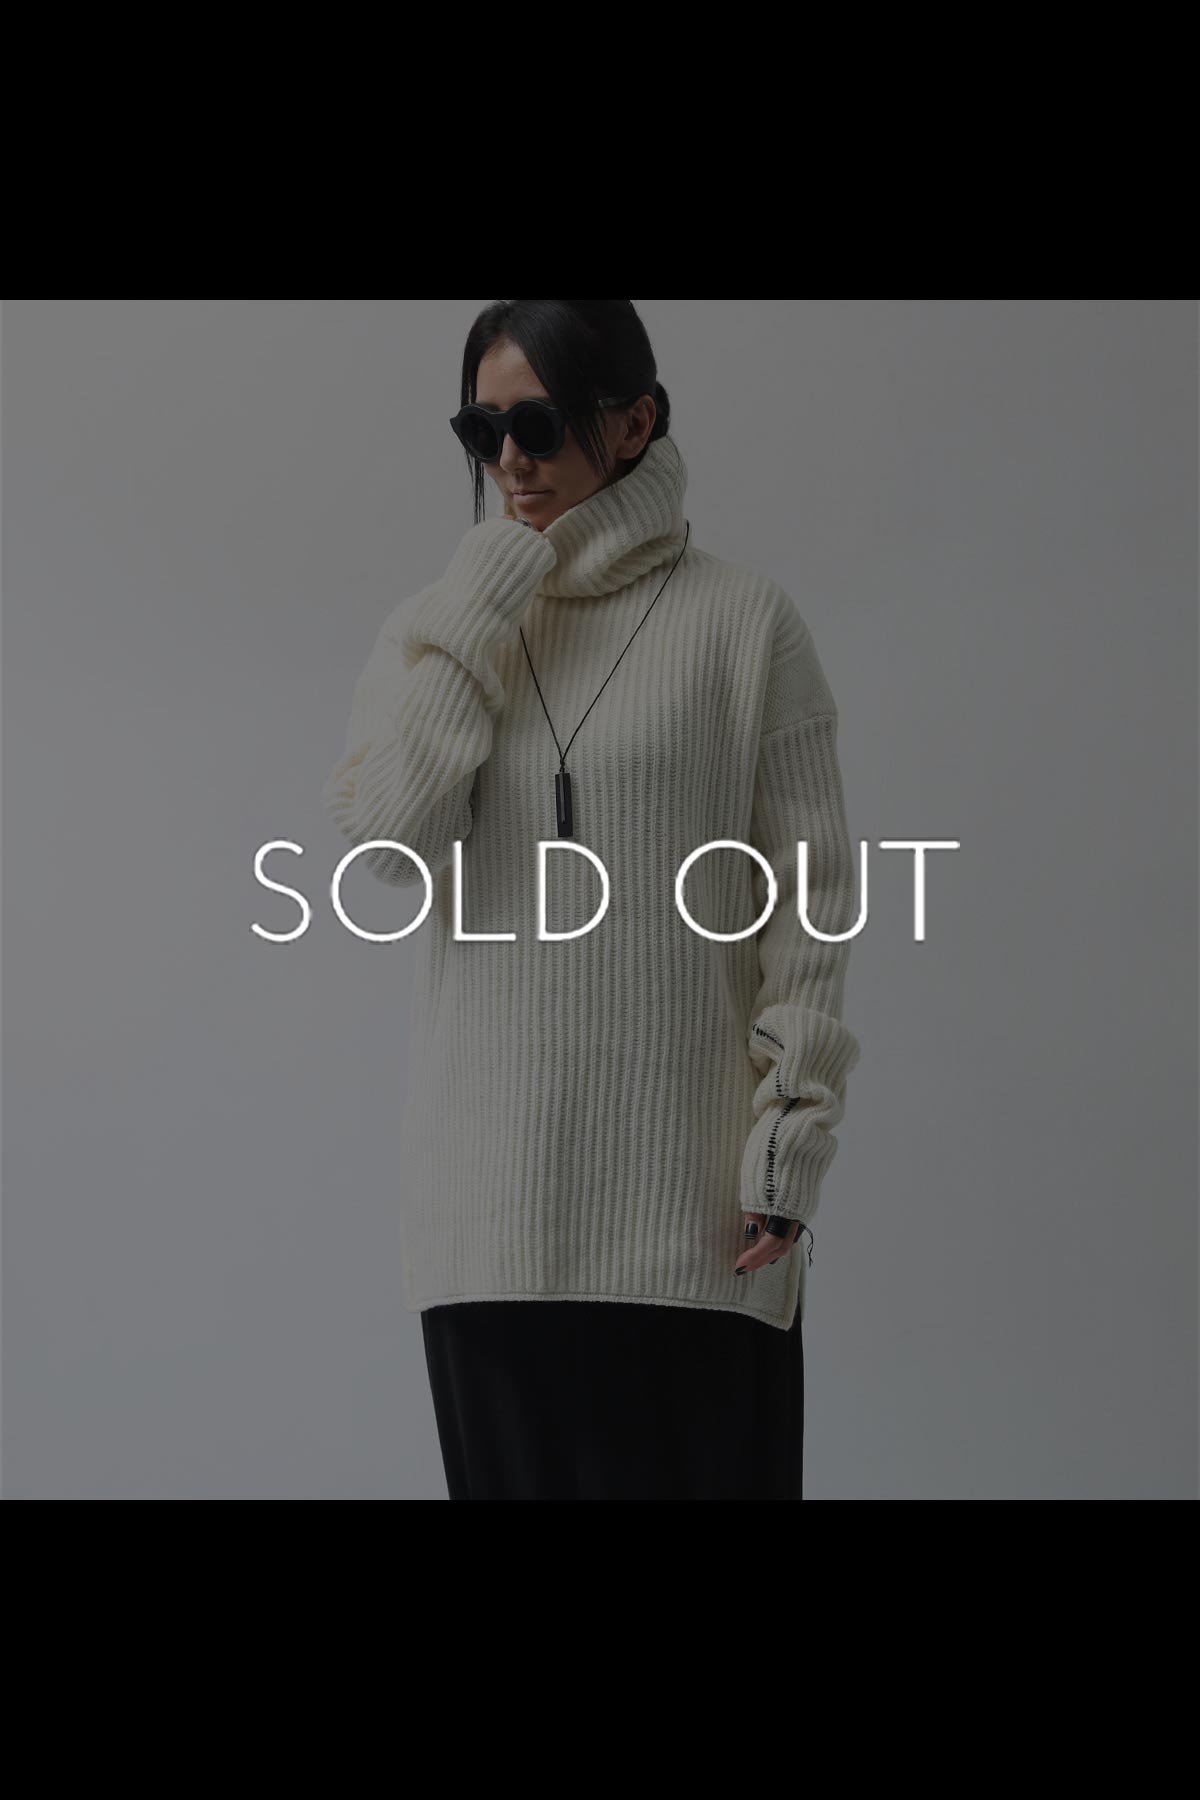 <img class='new_mark_img1' src='https://img.shop-pro.jp/img/new/icons8.gif' style='border:none;display:inline;margin:0px;padding:0px;width:auto;' />HIGHT NECK KNIT TOP MK72_OFF WHITE